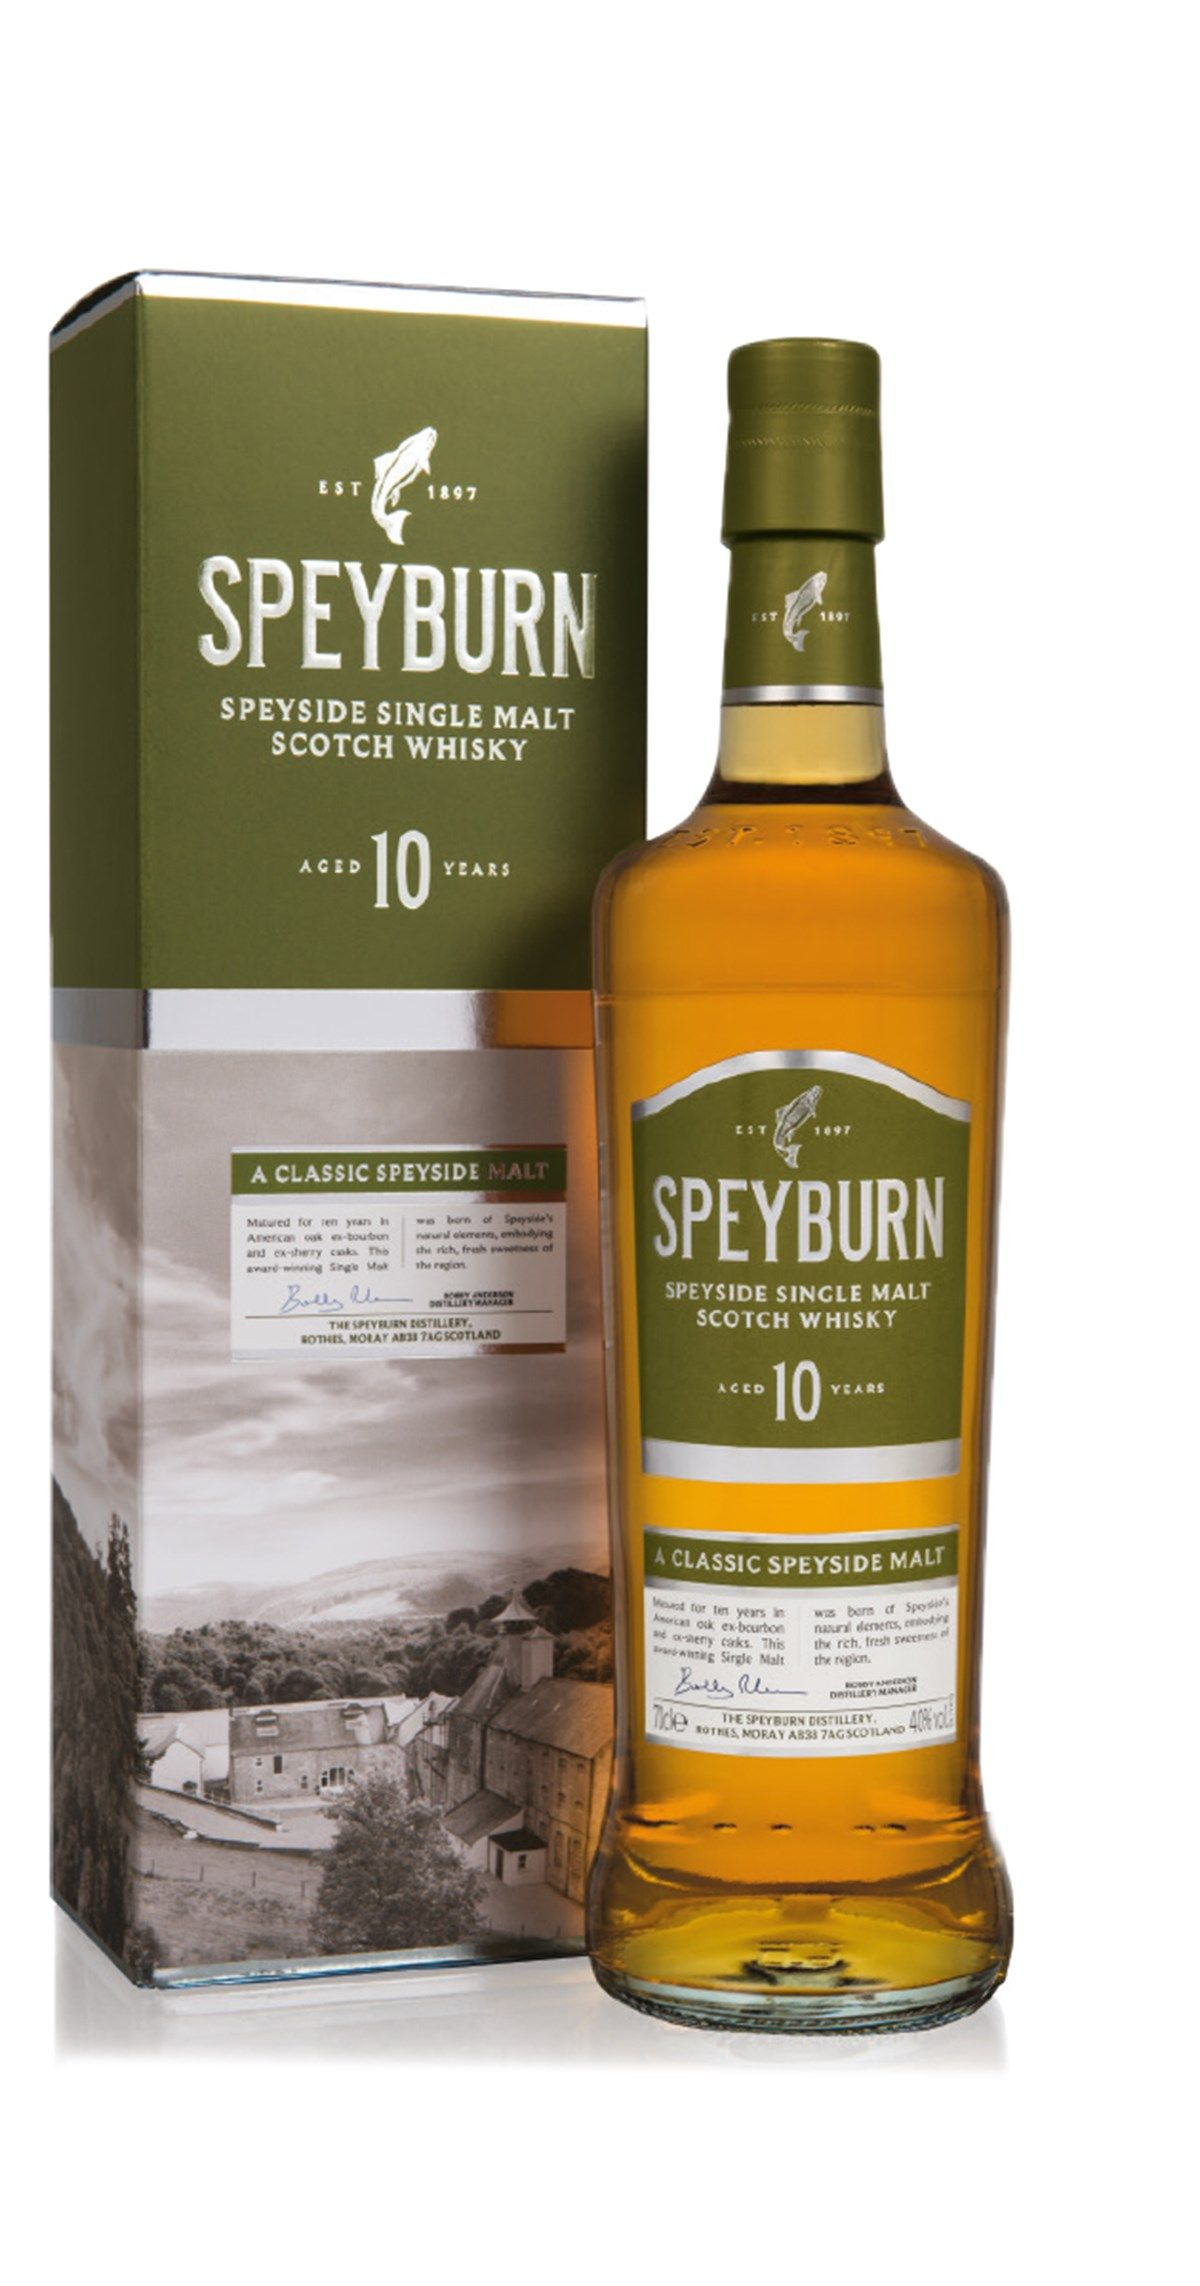 460459074c4 SPEYBURN 10 YEARS OLD SINGLE MALT SCOTCH WHISKY Bold flavours and a long